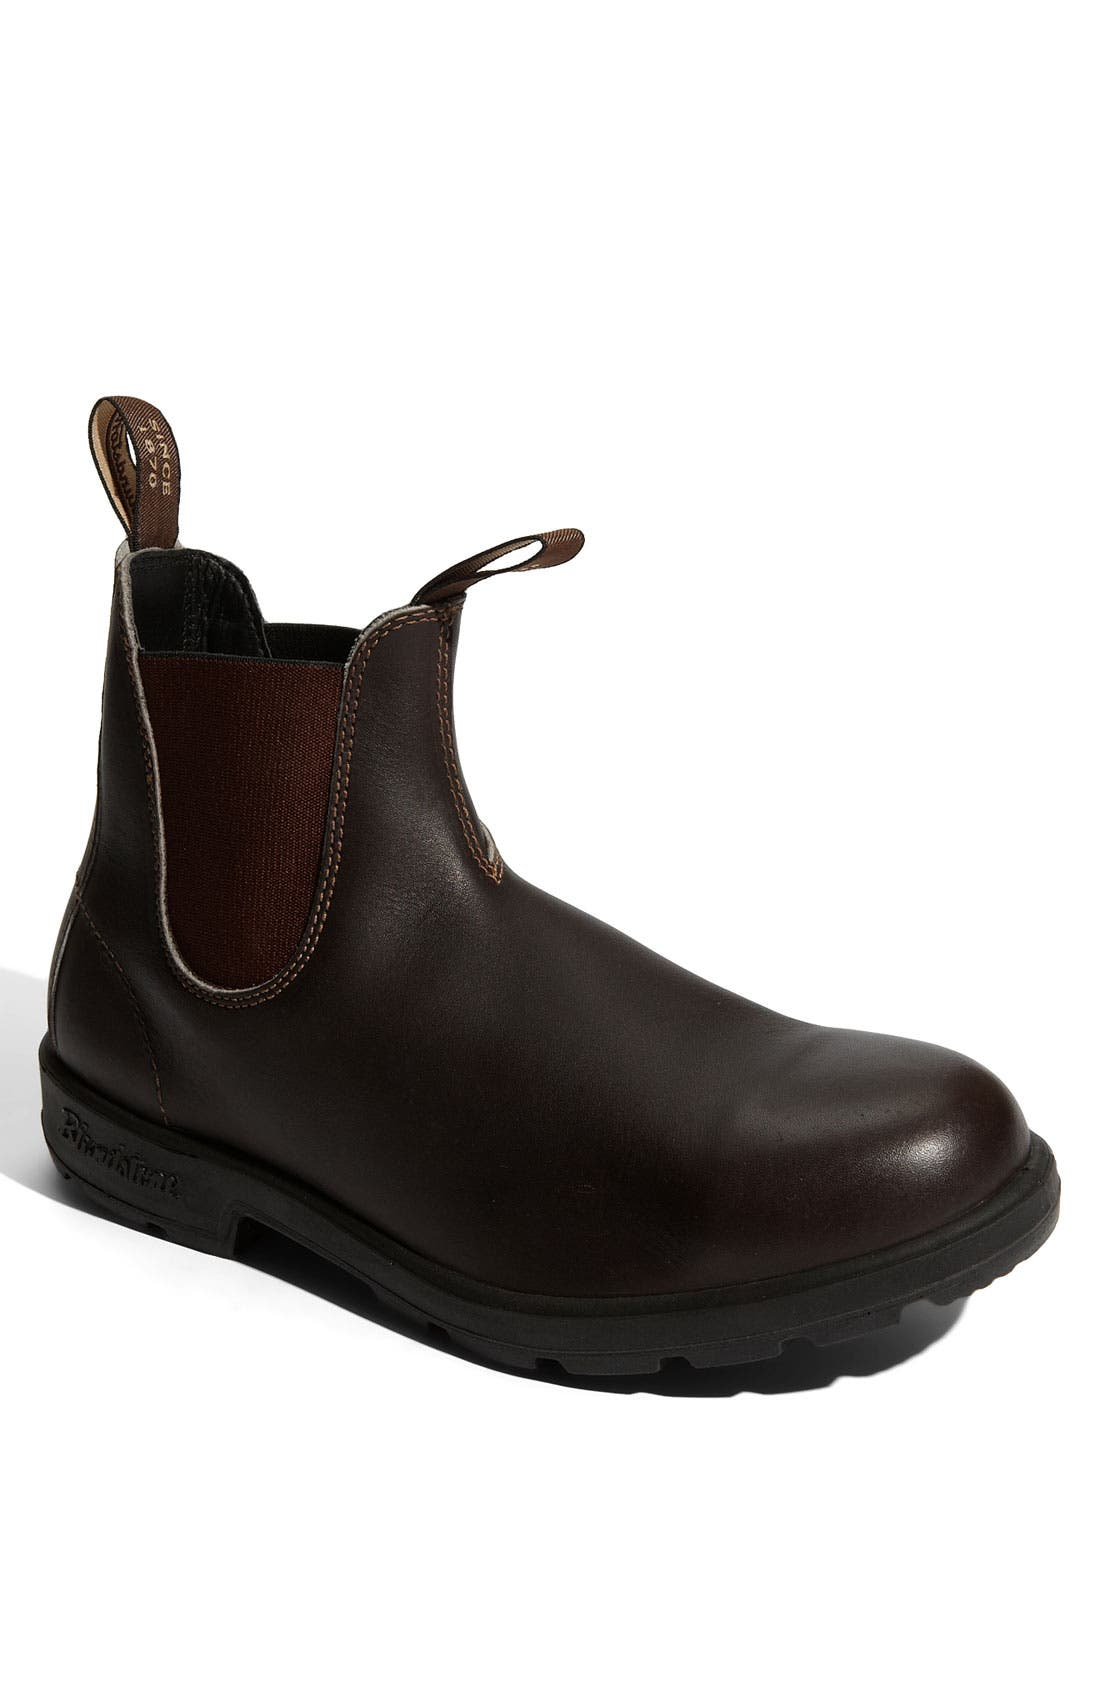 Footwear Classic Boot,                             Main thumbnail 1, color,                             STOUT BROWN